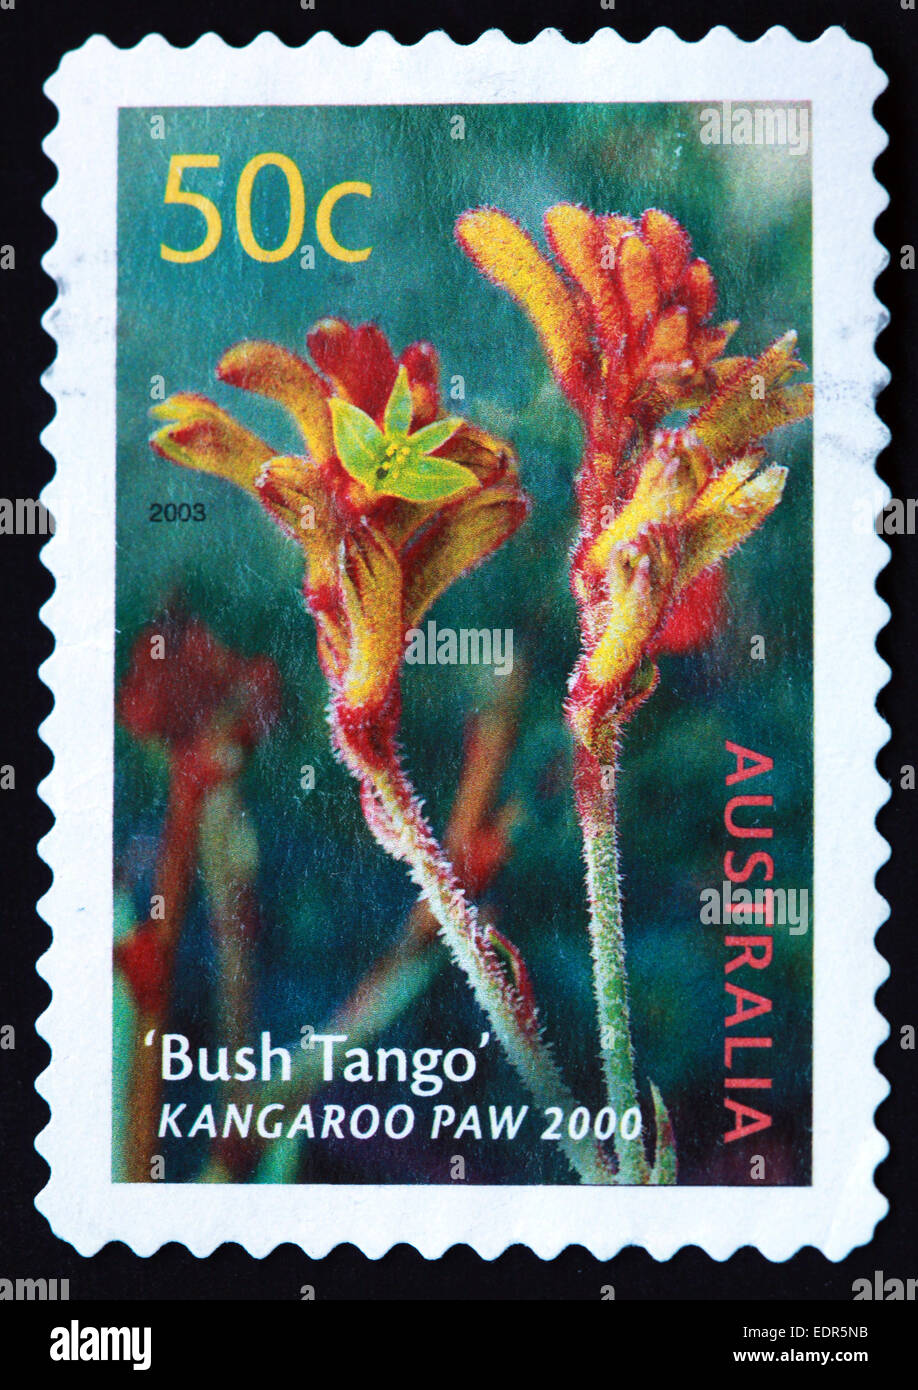 Used and postmarked Australia / Austrailian Stamp 2003 50c Bush Tango Kangaroo Paw 2000 - Stock Image